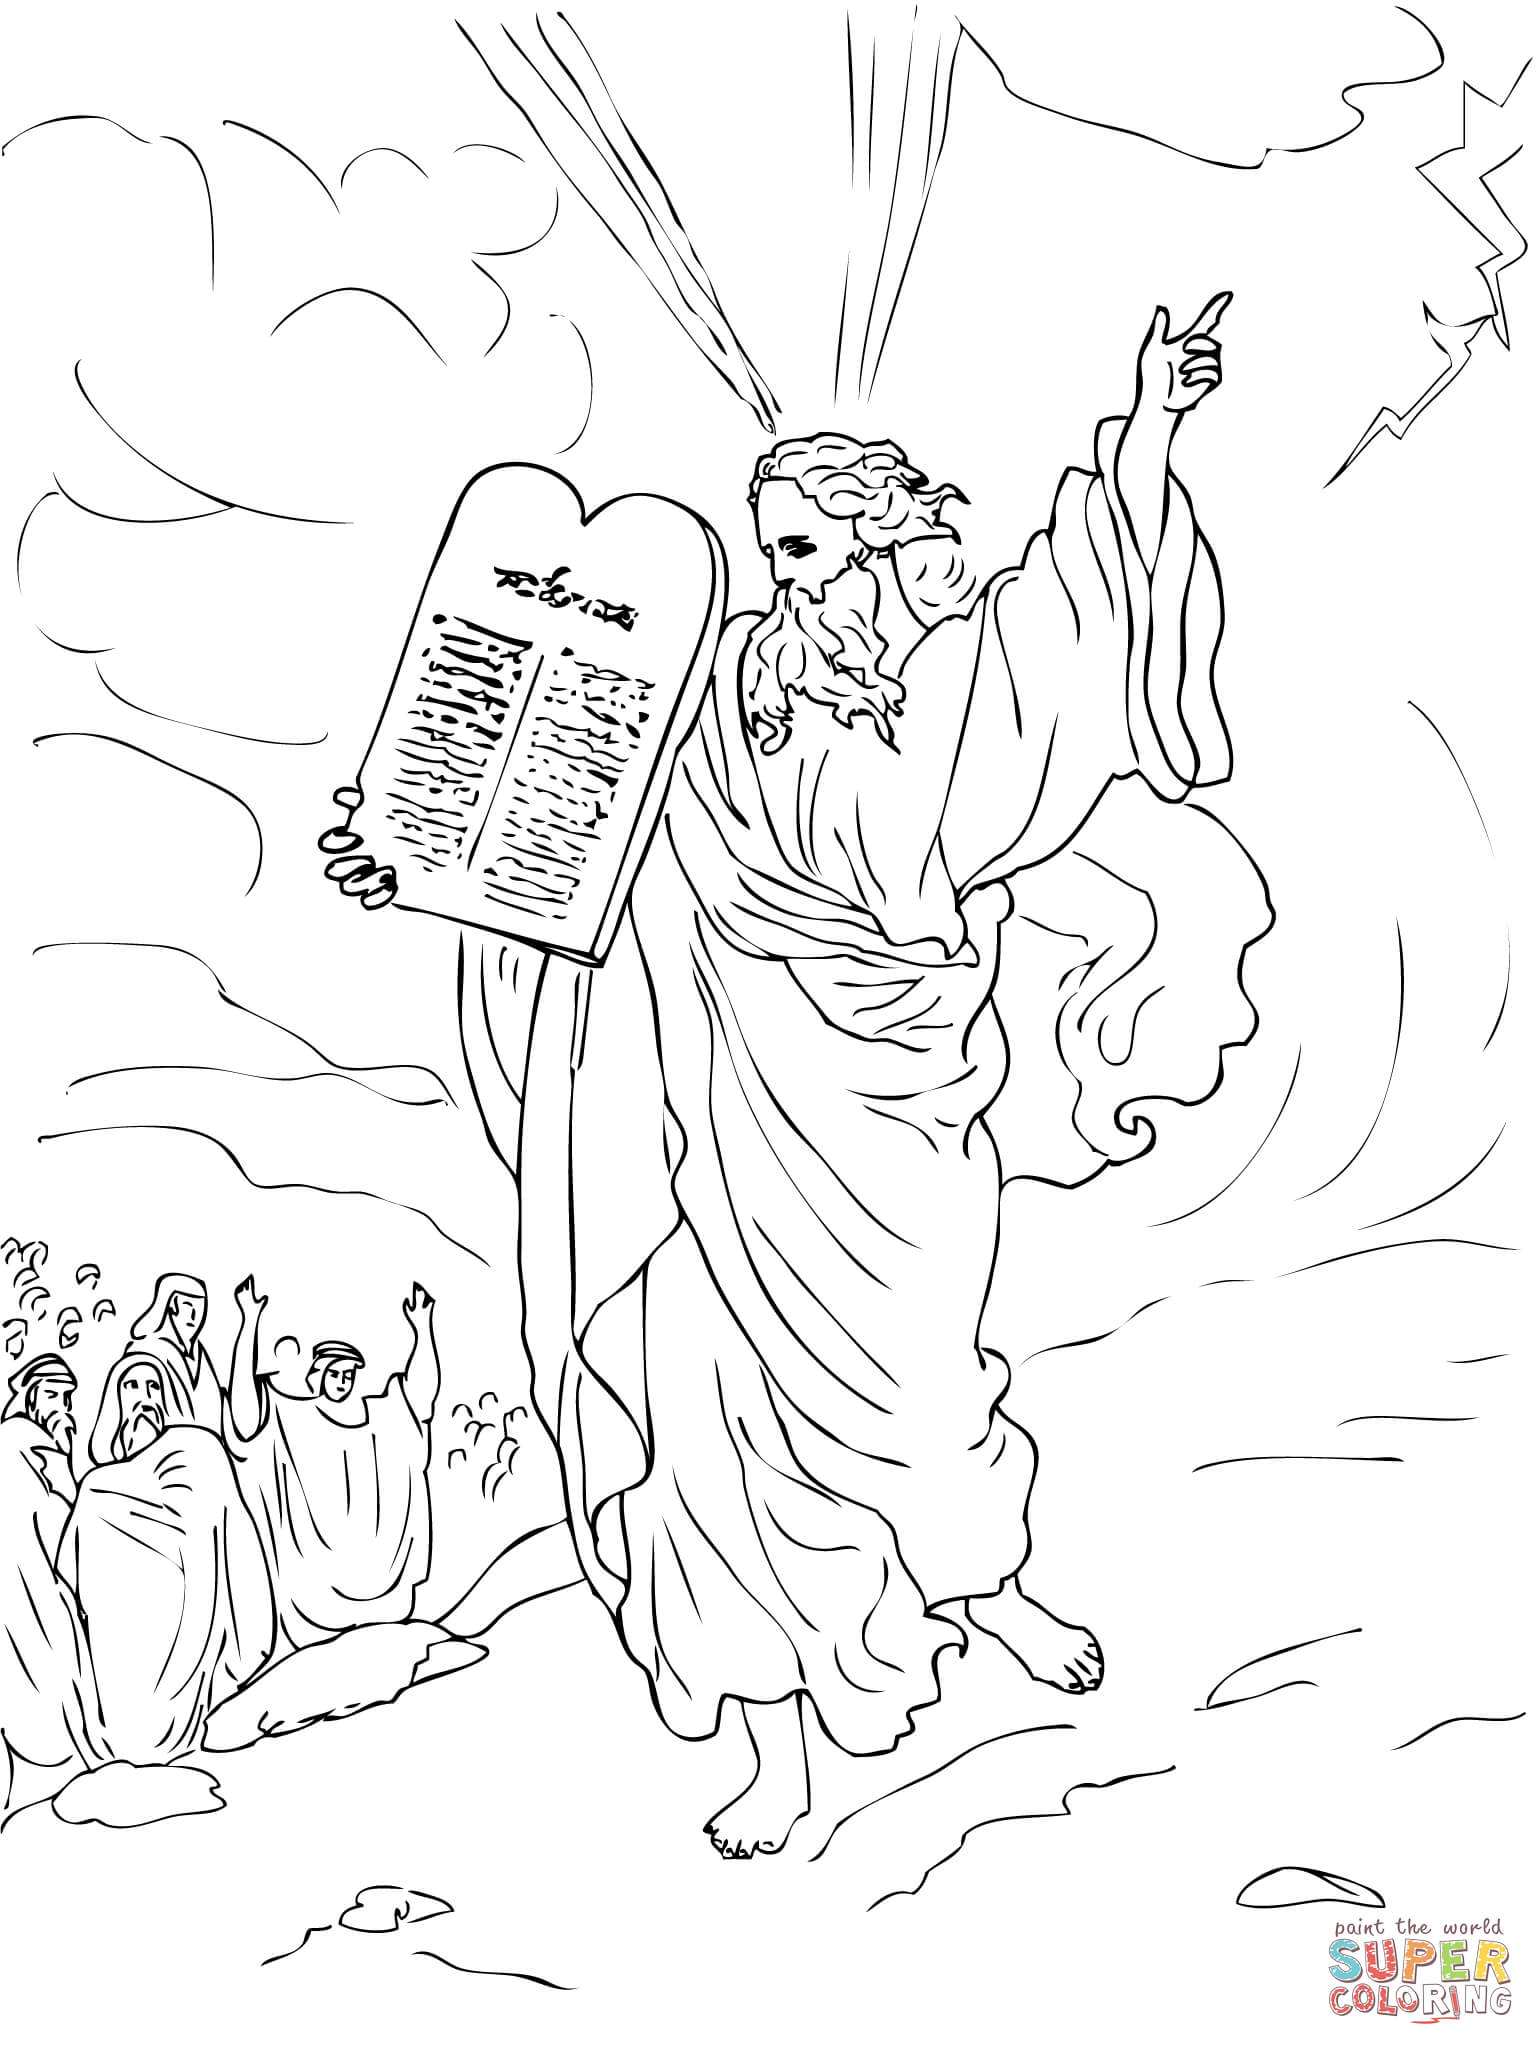 Moses Comes Down from Mount Sinai with Ten Commandments